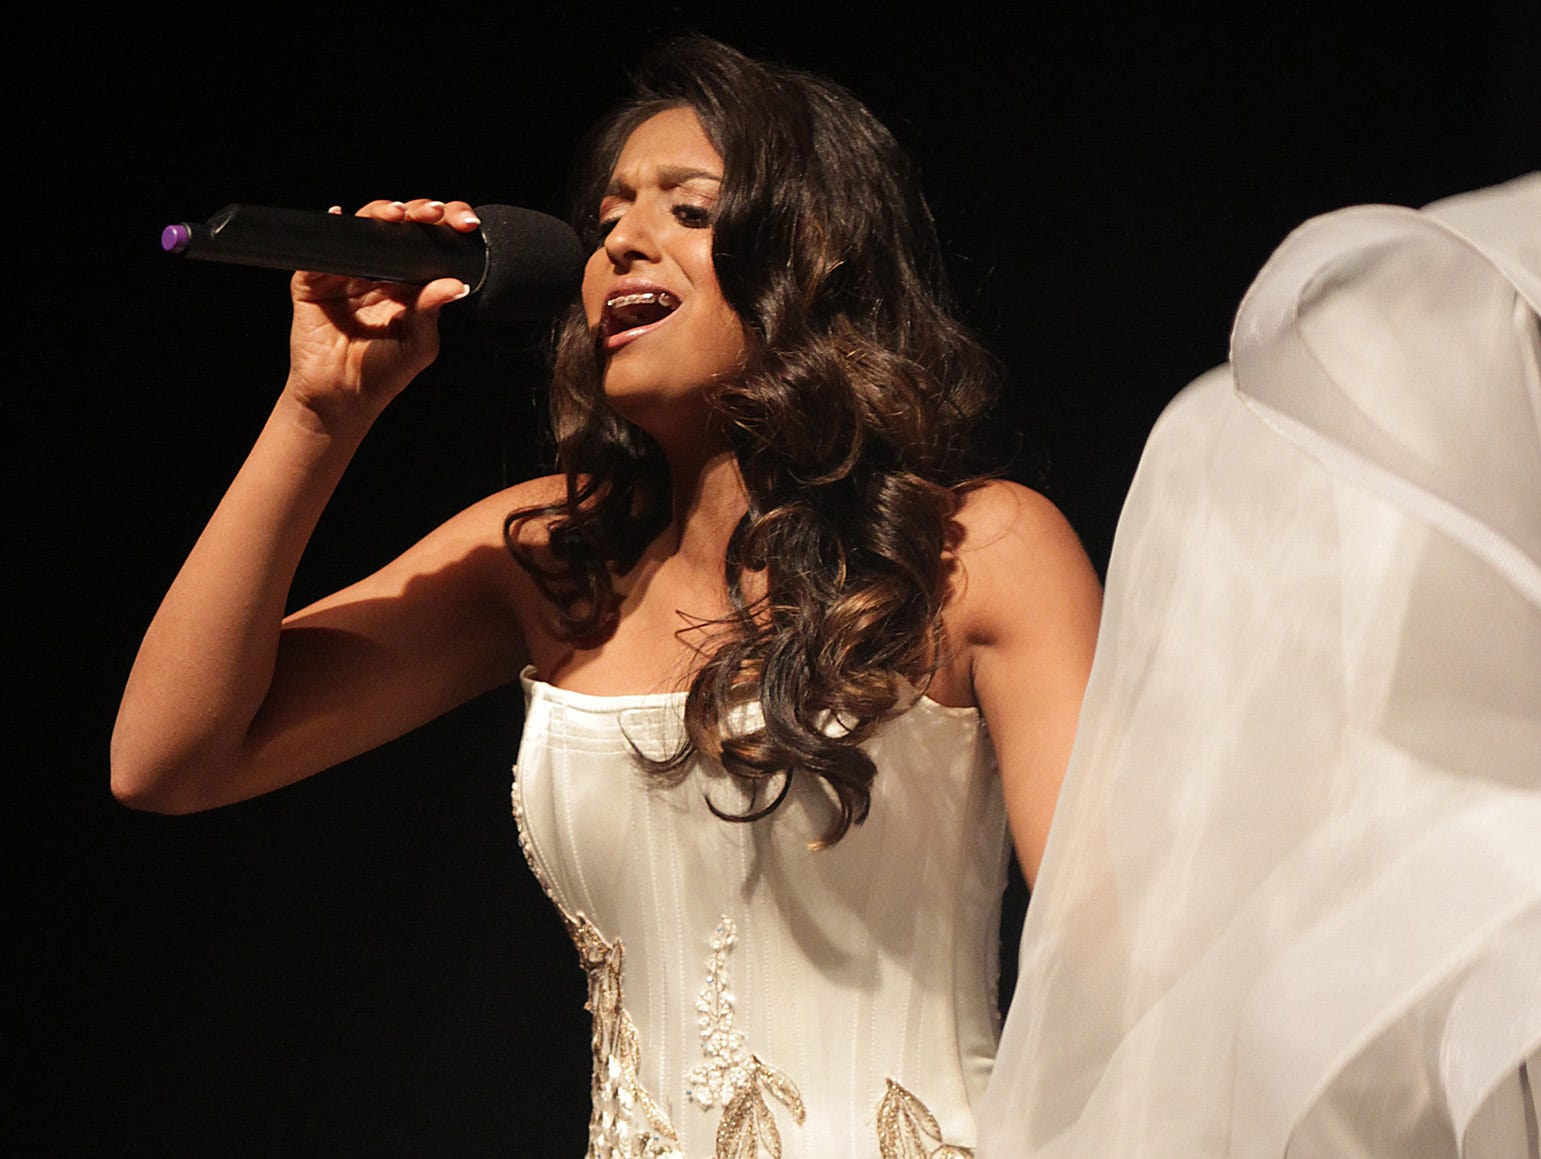 Zoeya Khan sings at the Miss Tennessee's Outstanding Teen Pageant in Gallatin, TN on Saturday, March 30, 2019.